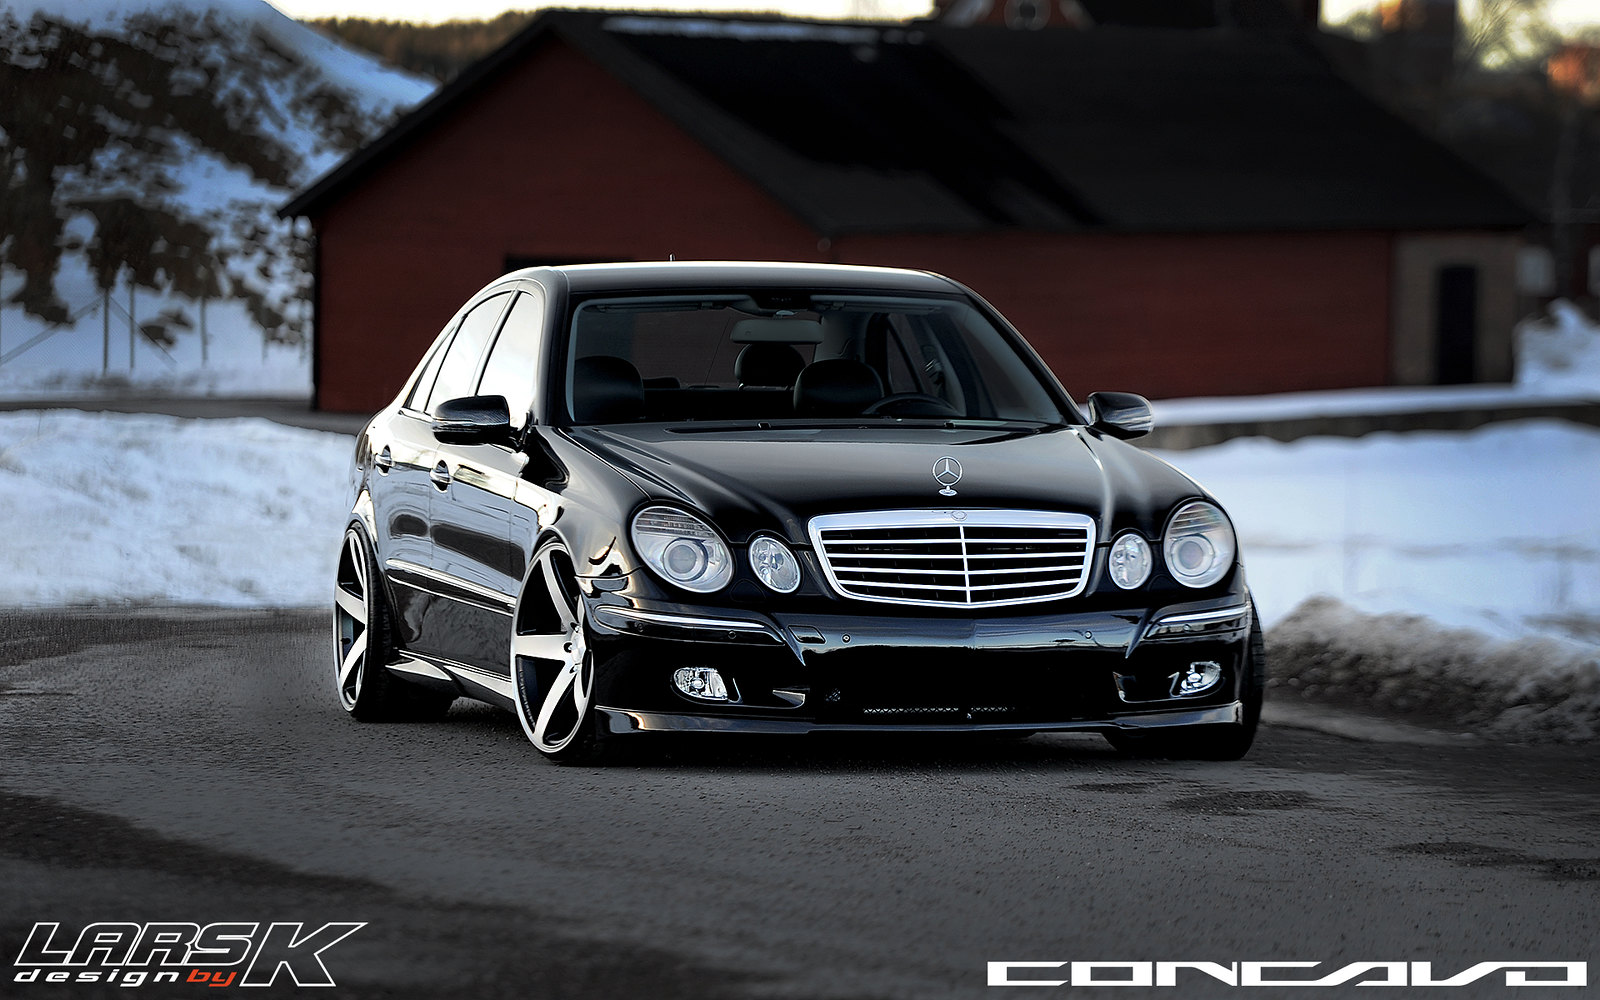 Mercedes Benz E420 On 20x10 5 Cw 5 By Larskdesign In Sweden